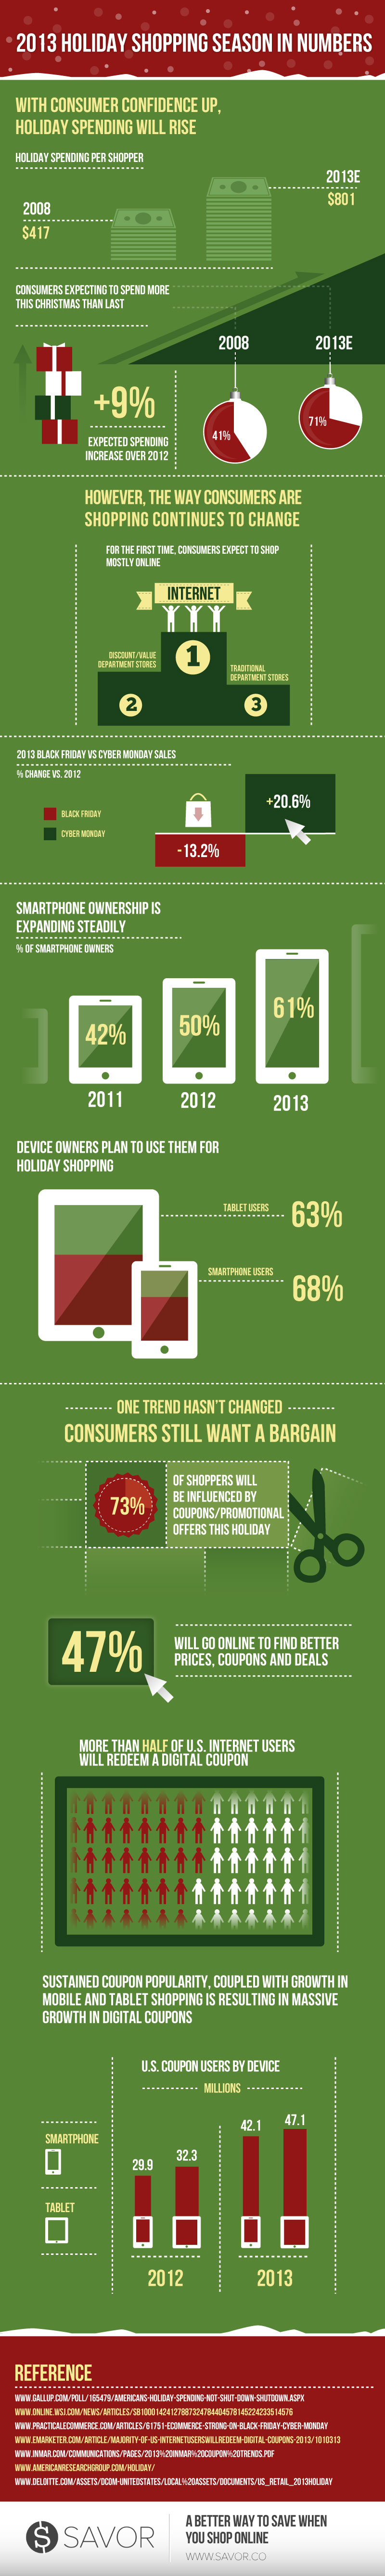 8 Trends Impacting 2013 Holiday Shopping